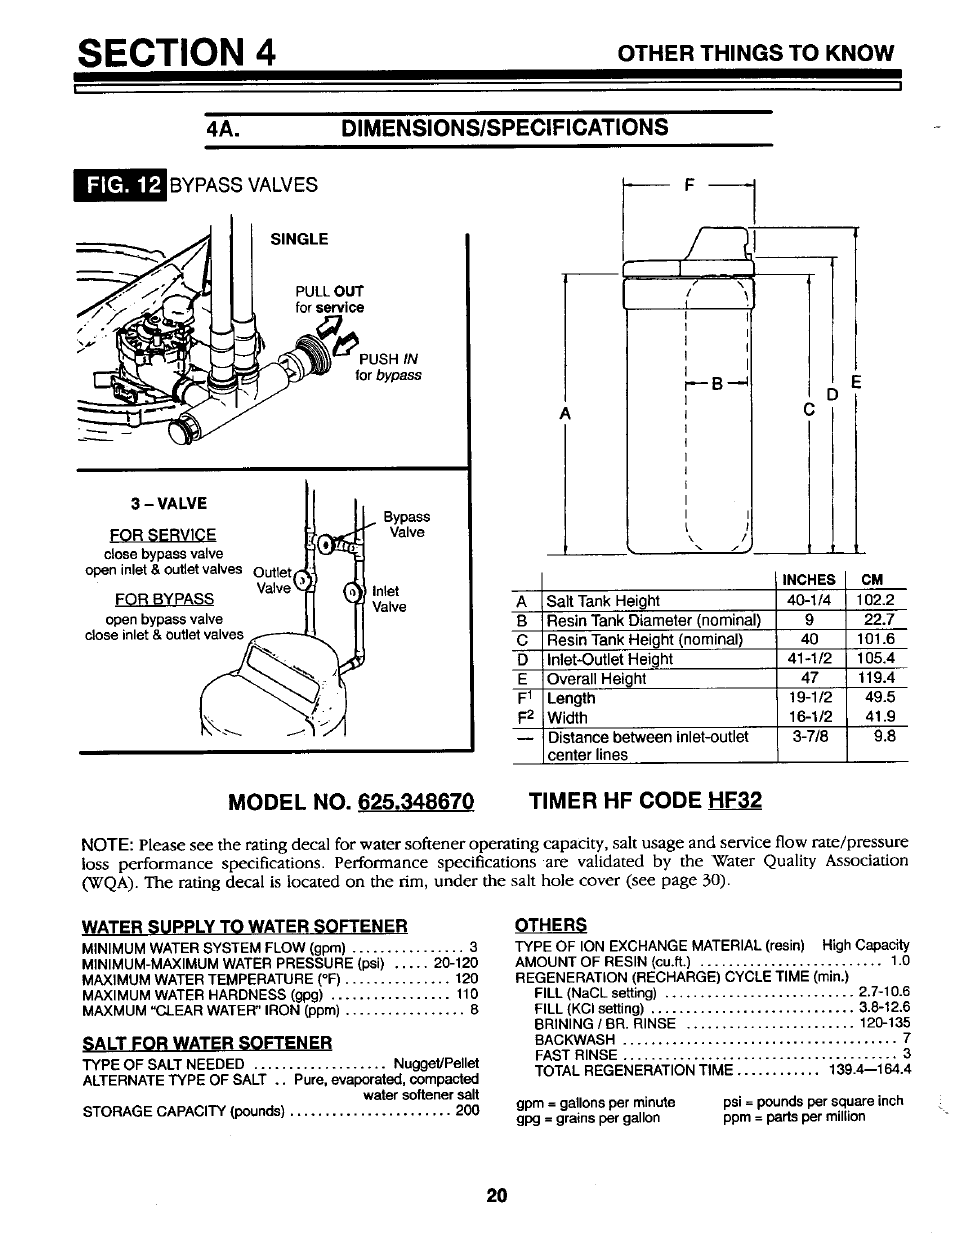 Dimensions/specifications, Bypass valves, Model no. 625